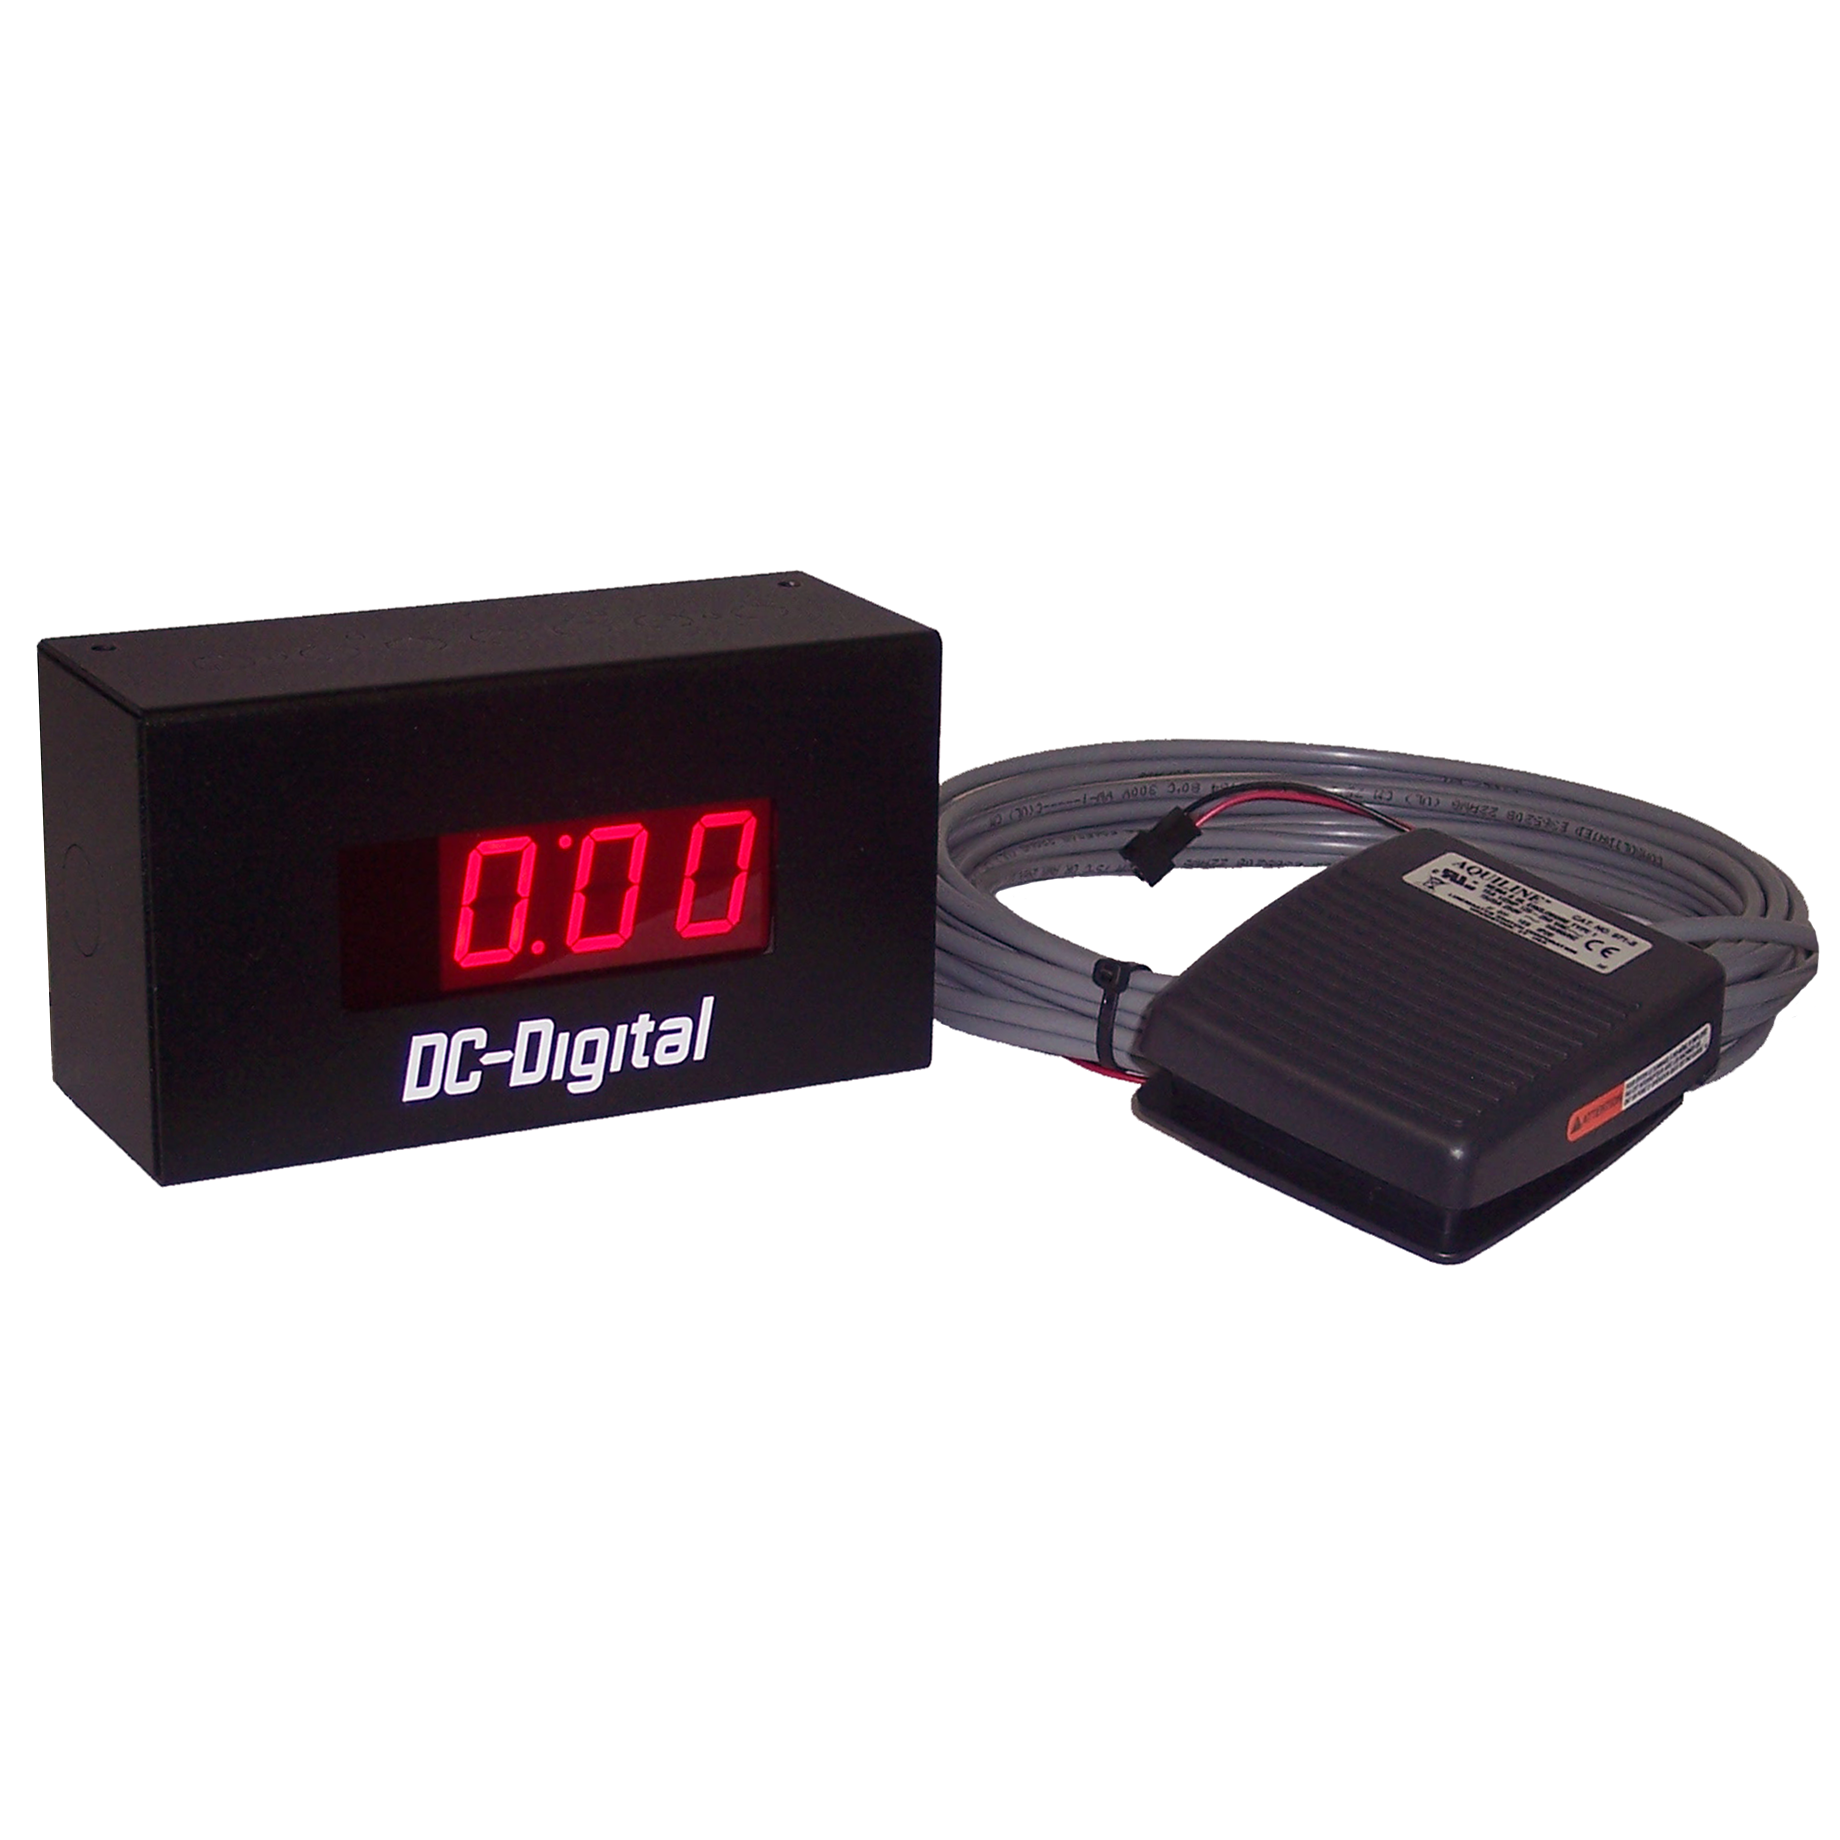 DC-10T-DN-Hand-Foot activated hand washing timer with LED display